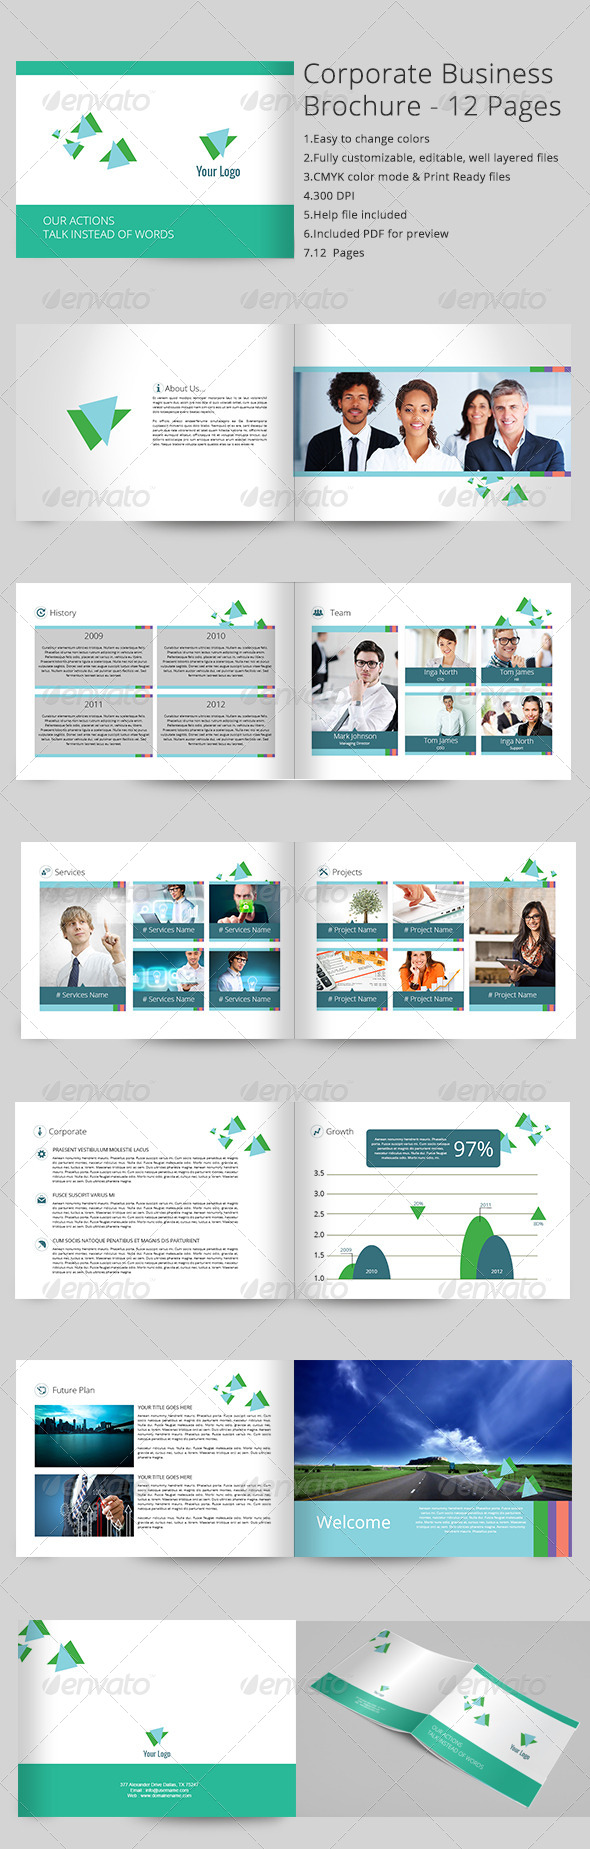 Corporate Business Brochure 12 Pages - Corporate Brochures